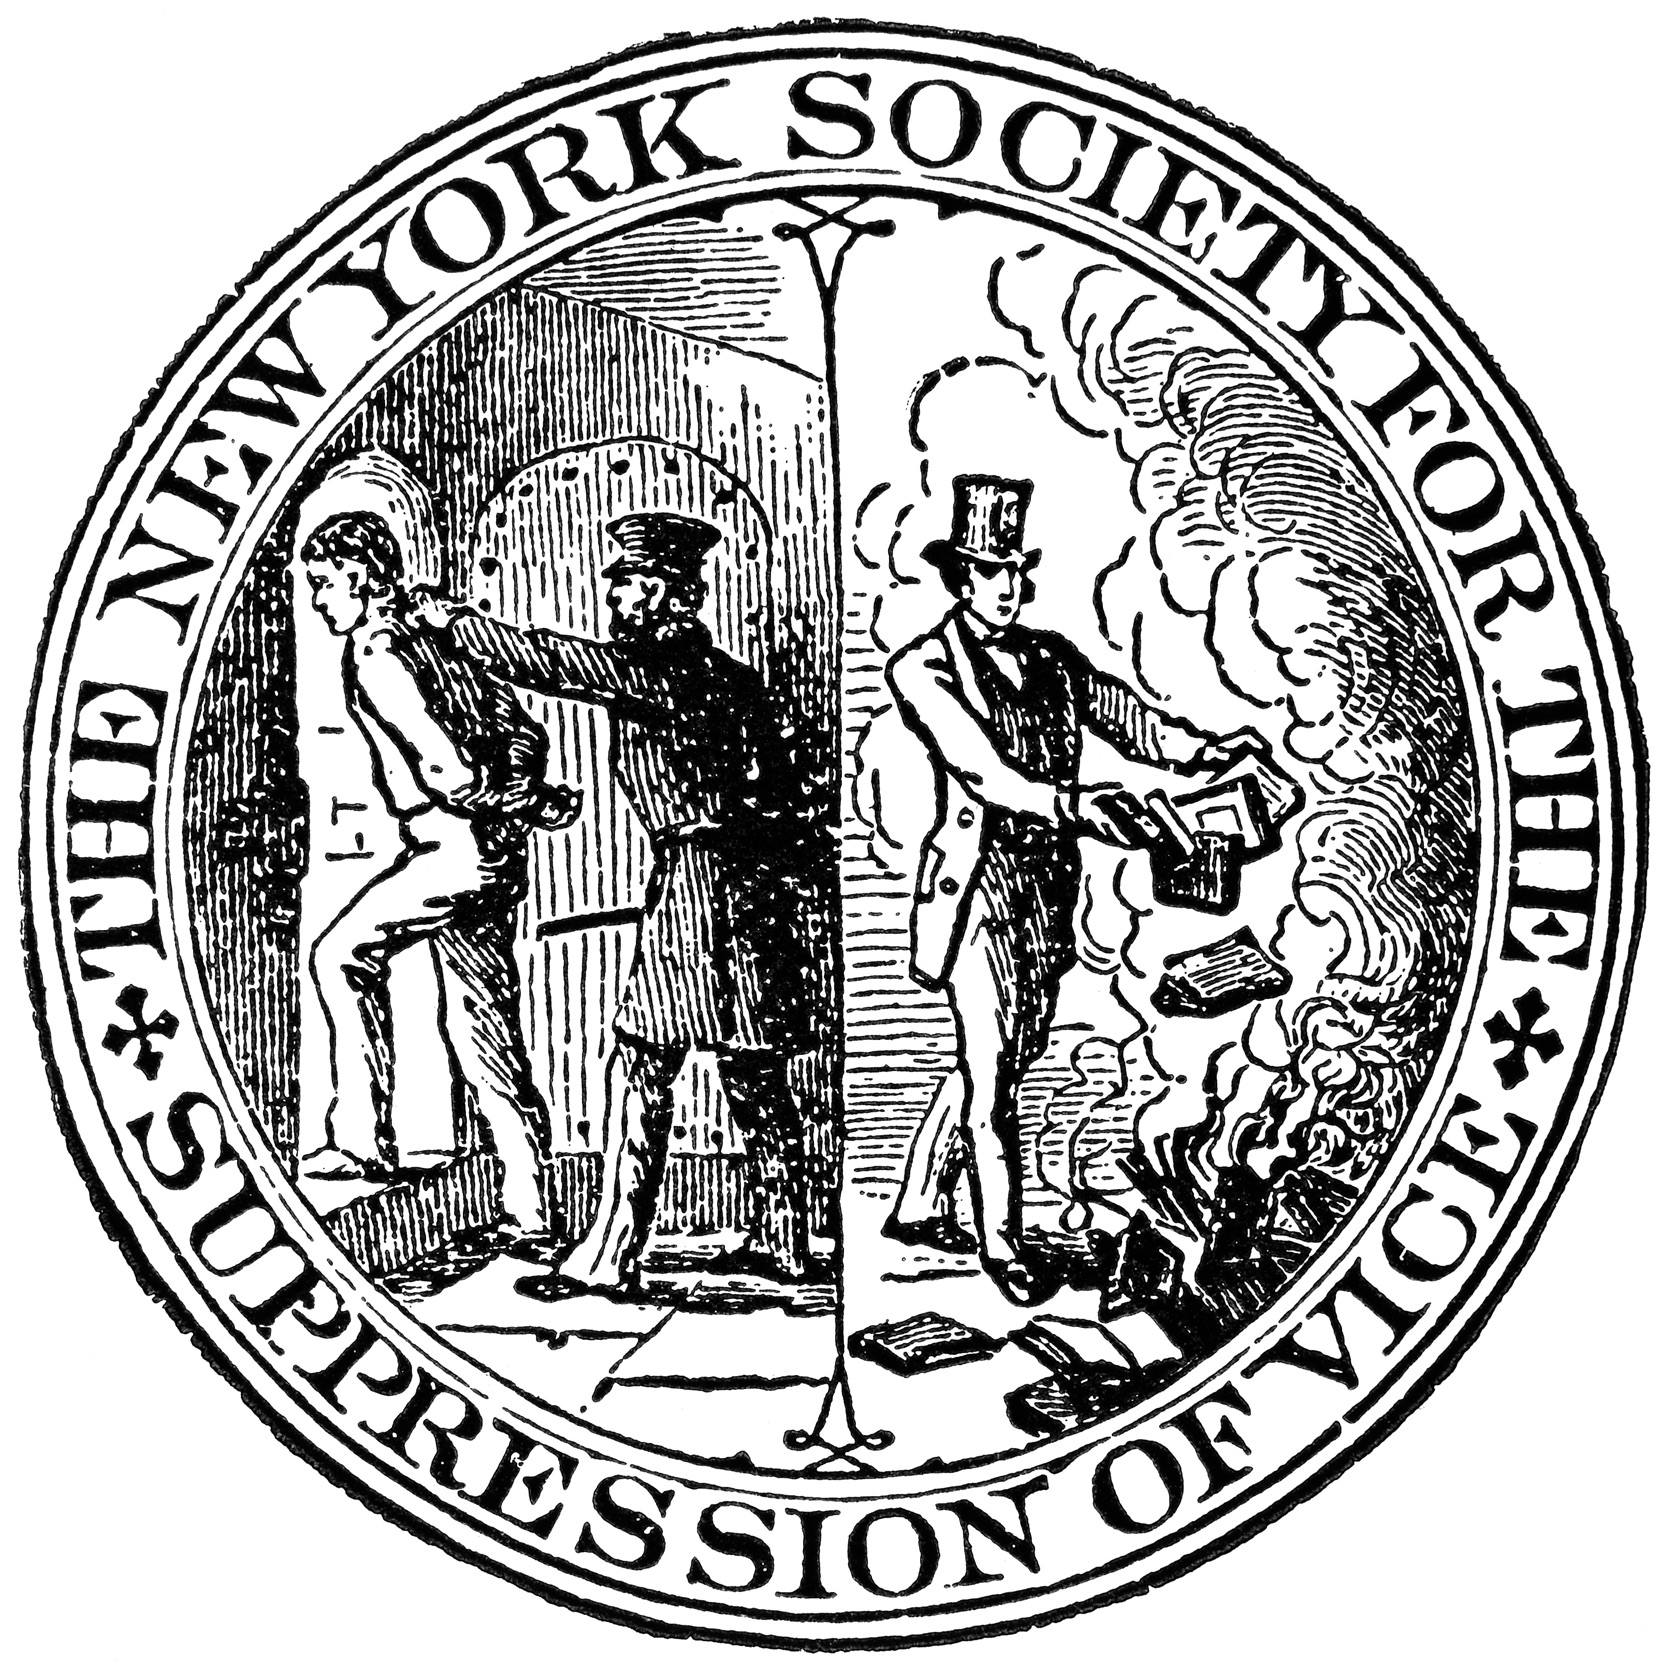 New York Society for the Suppression of Vice state censorship body